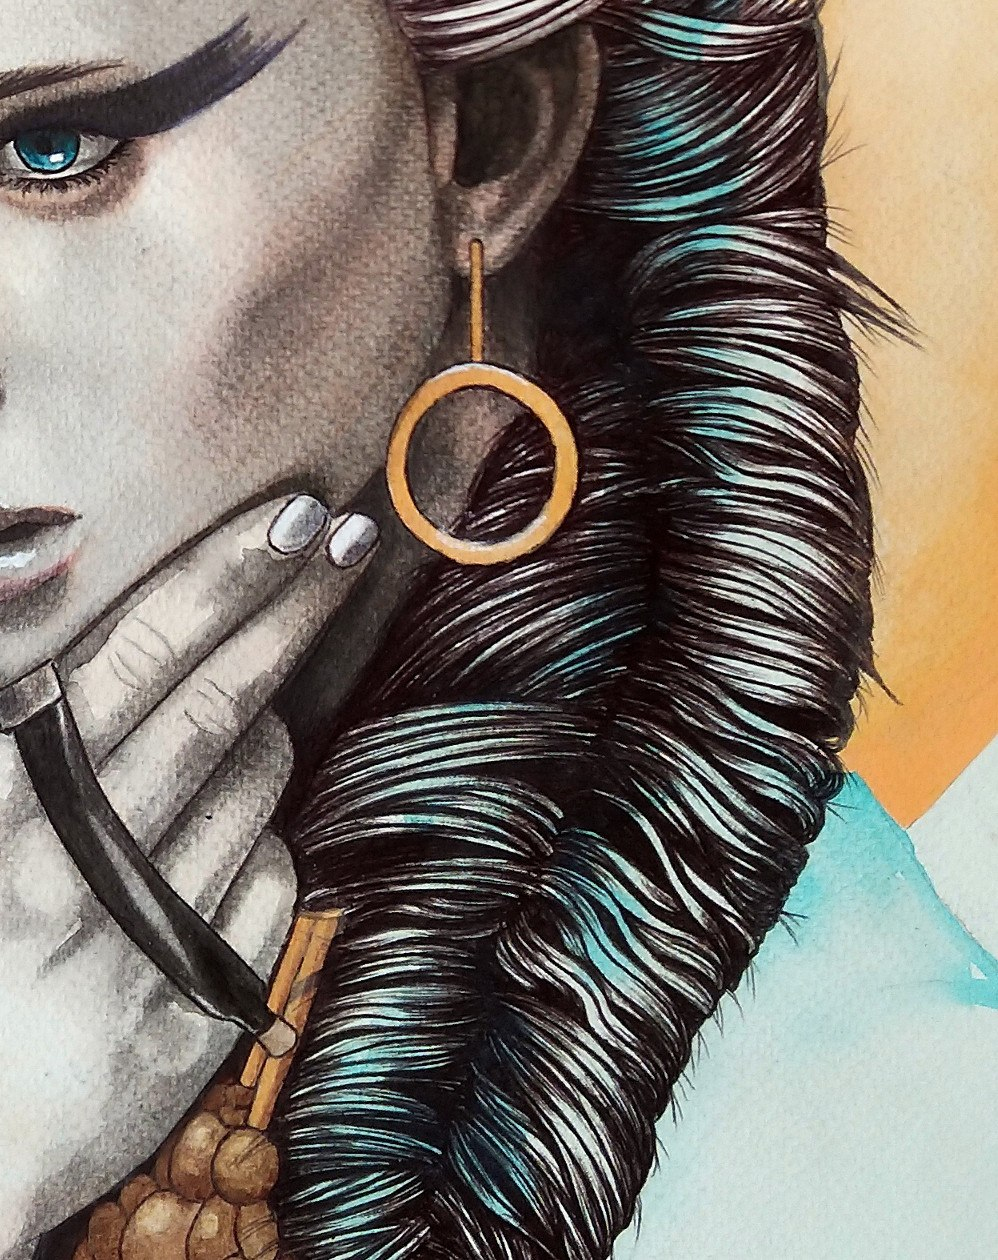 Kati Designs detail of 'Chemalis' original artwork: 'the human form, the face, eyes, hair, it just holds my attention'